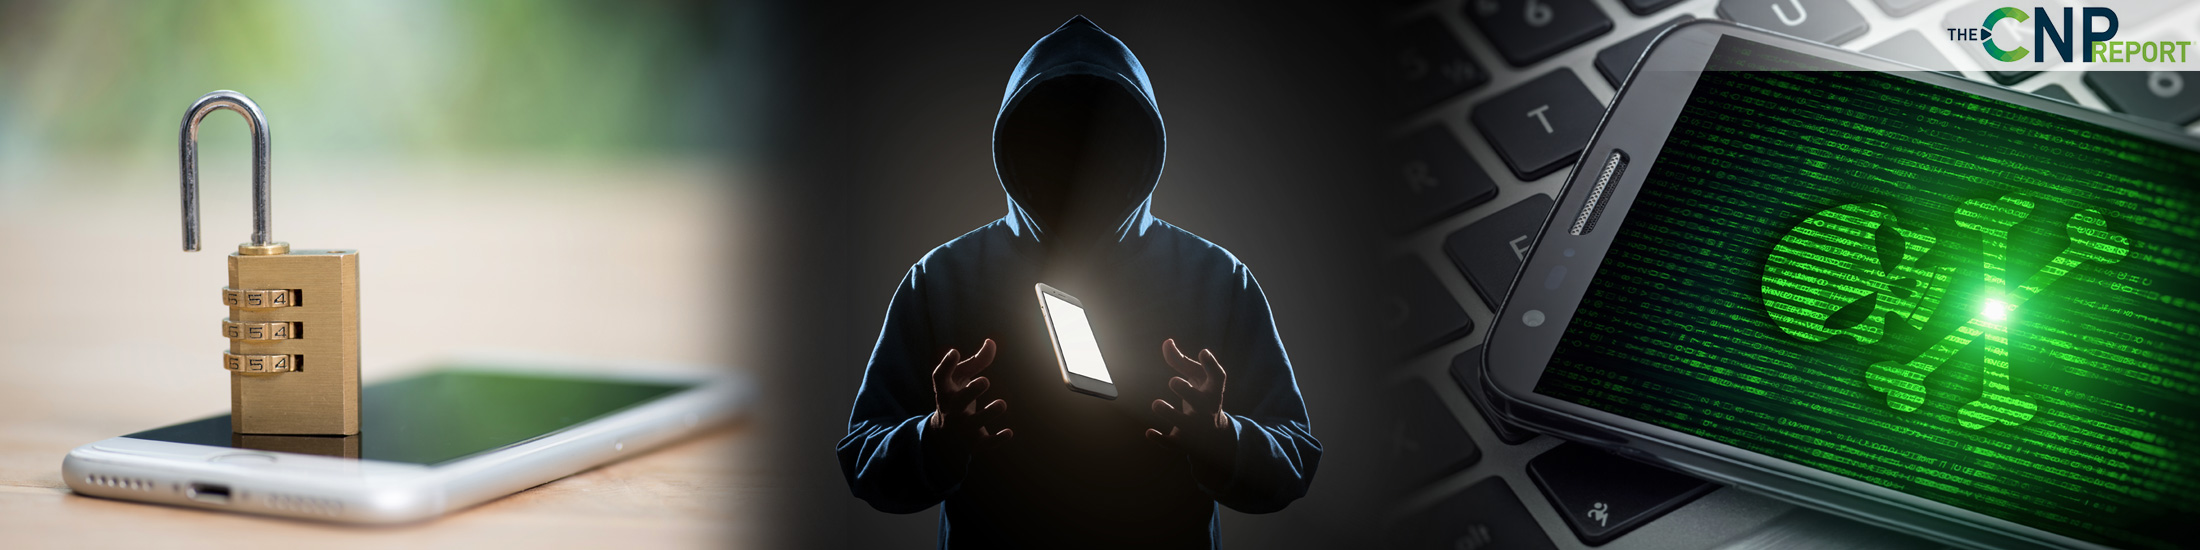 49% of Suspected Online Fraud Performed on Mobile Devices: Report